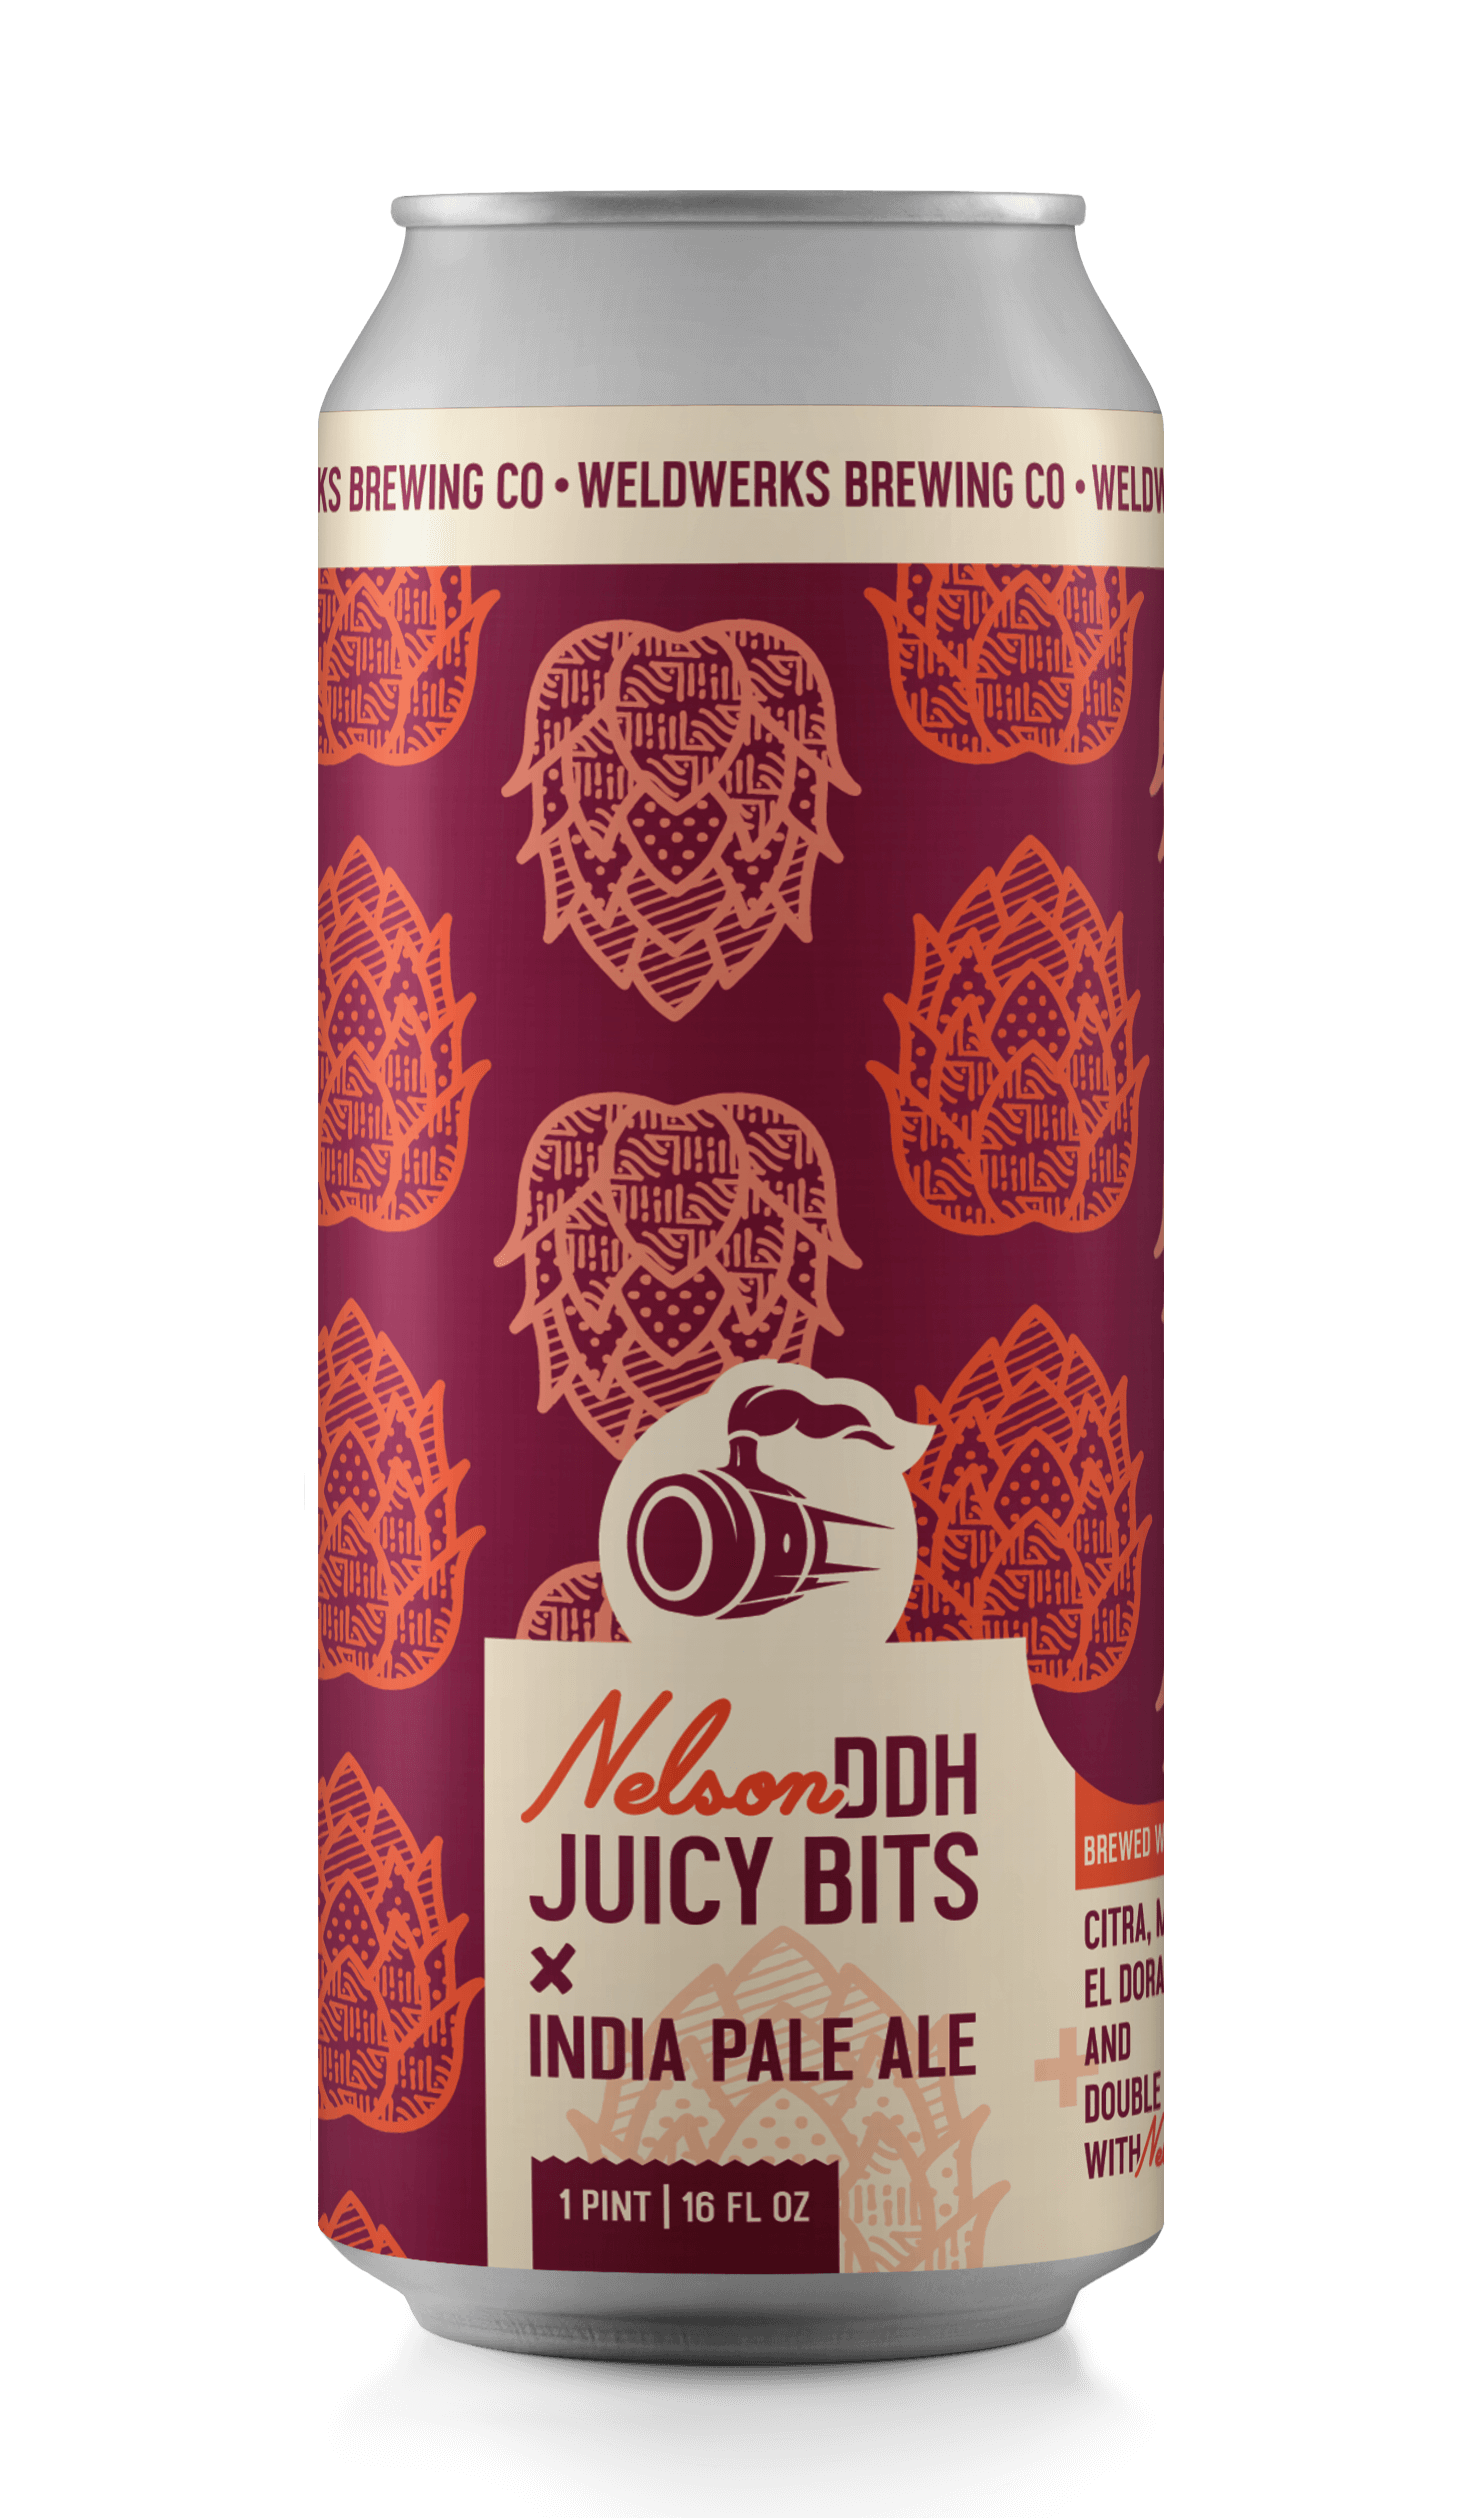 Nelson DDH Juicy Bits